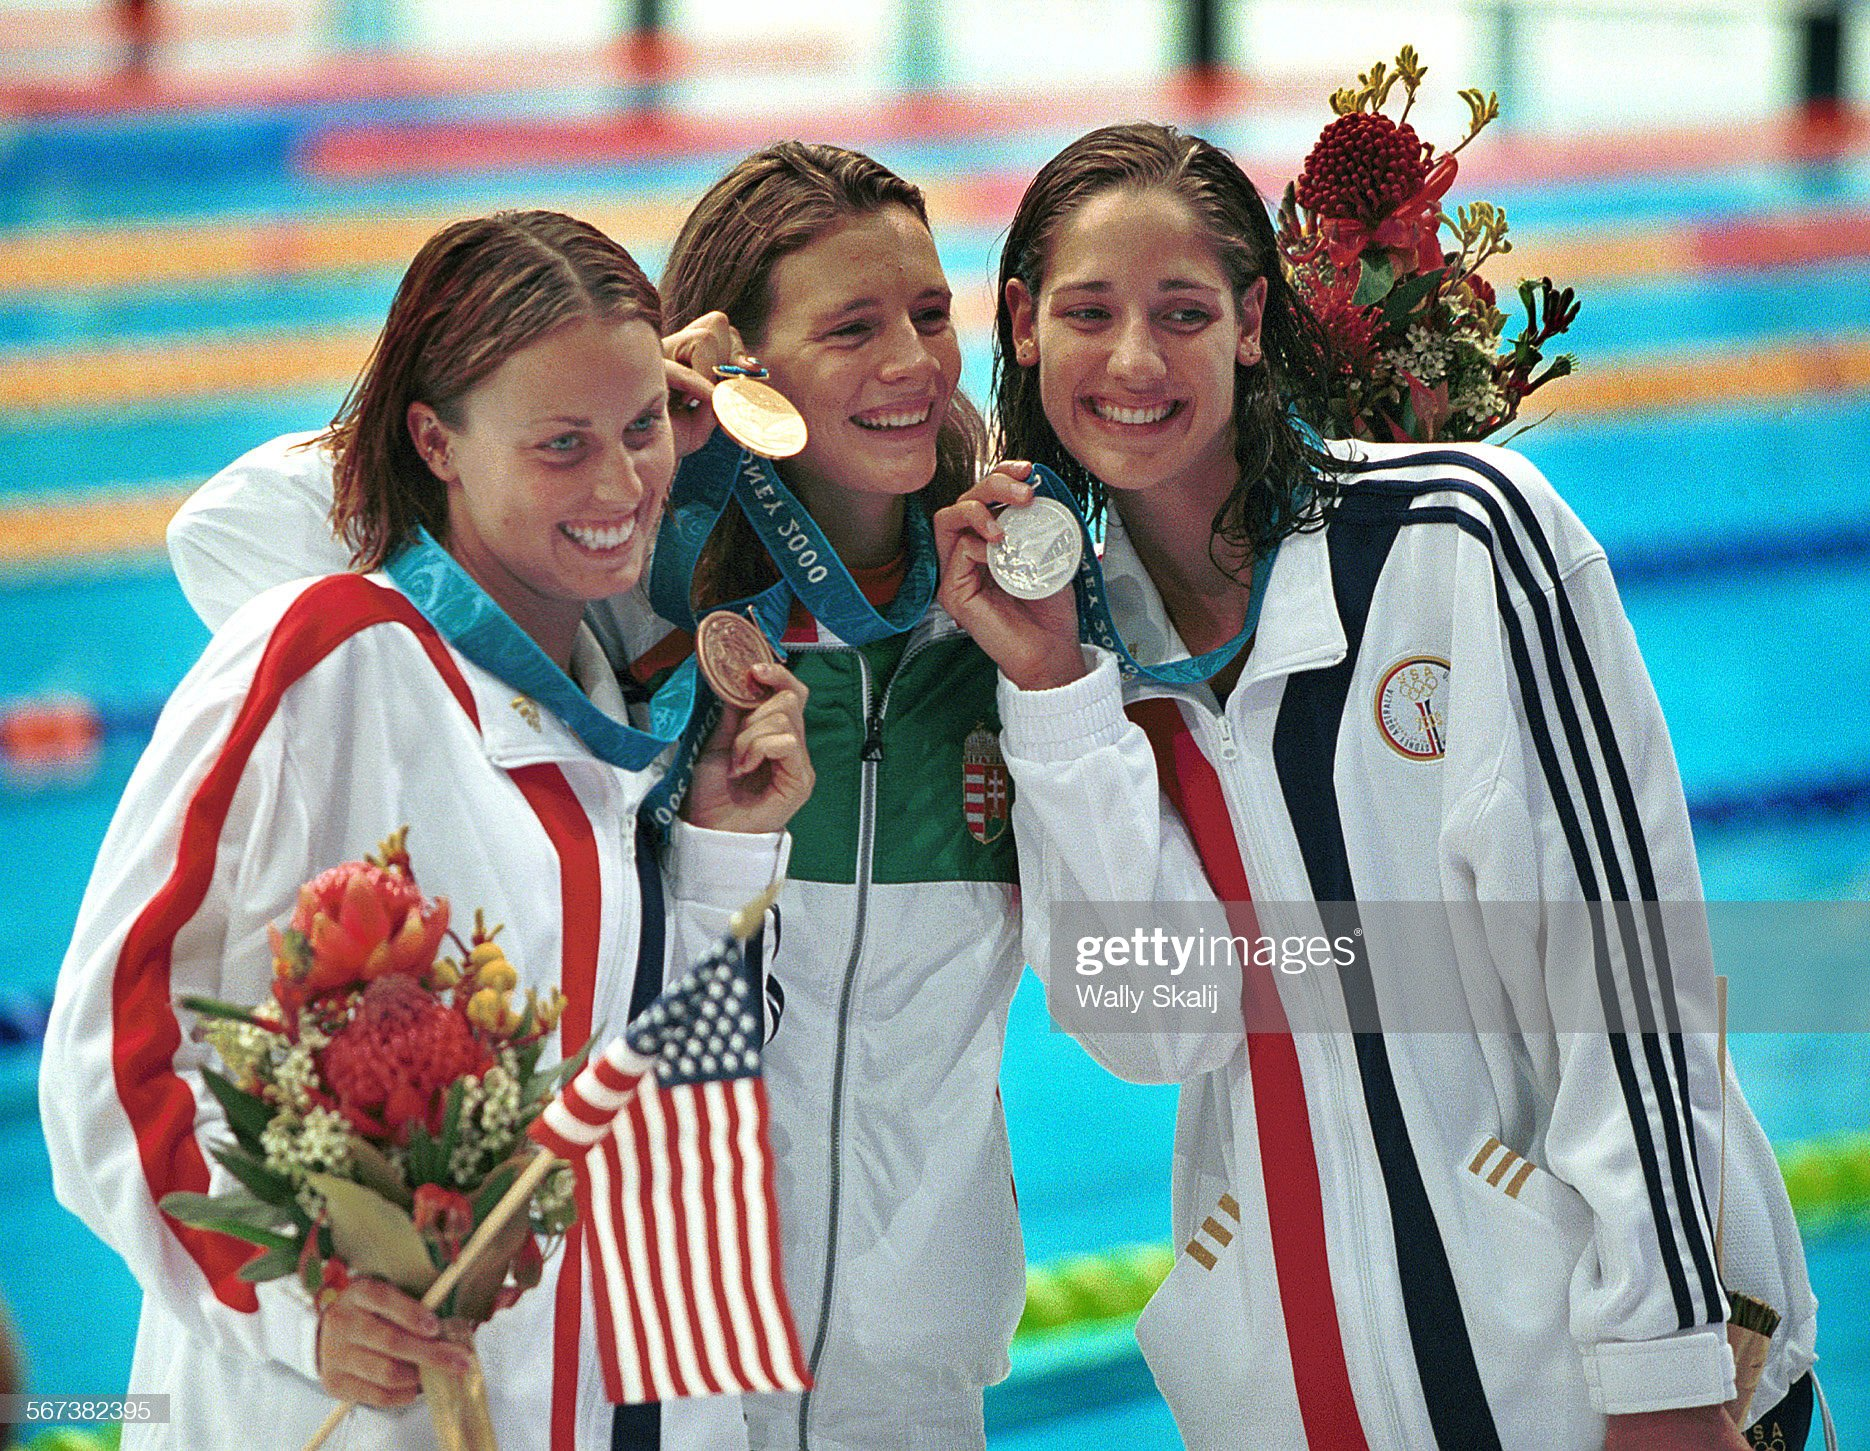 016030.SP.0921.oly3.WS Swimming Finals were held at the Olympic Park Aquatic Center on 9/21/00. The : Fotografía de noticias